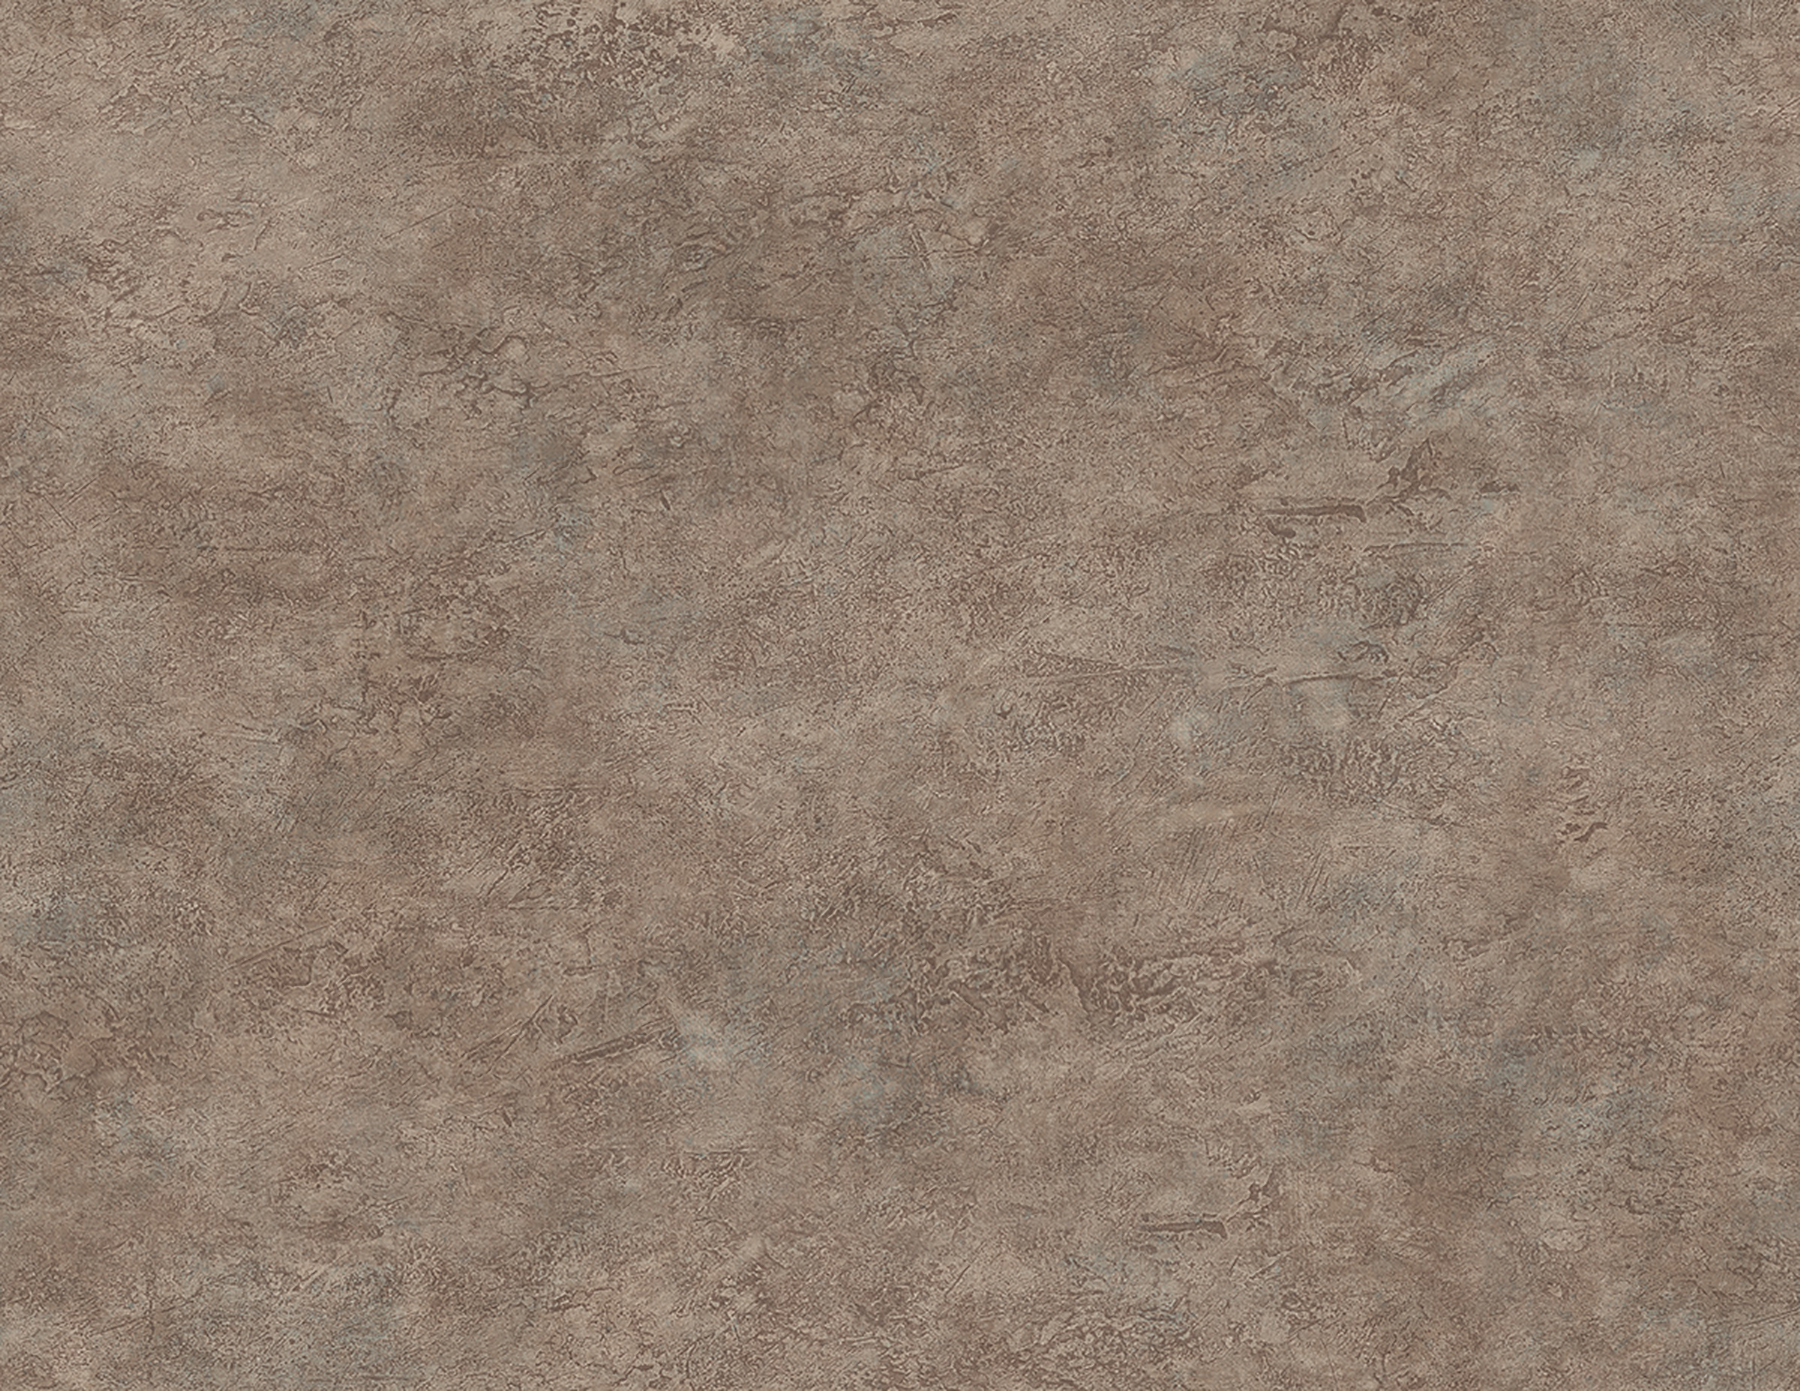 Kenneth James By Brewster 2765 Bw40706 Geo Marmor Brown Marble Texture Wallpaper The Savvy Decorator